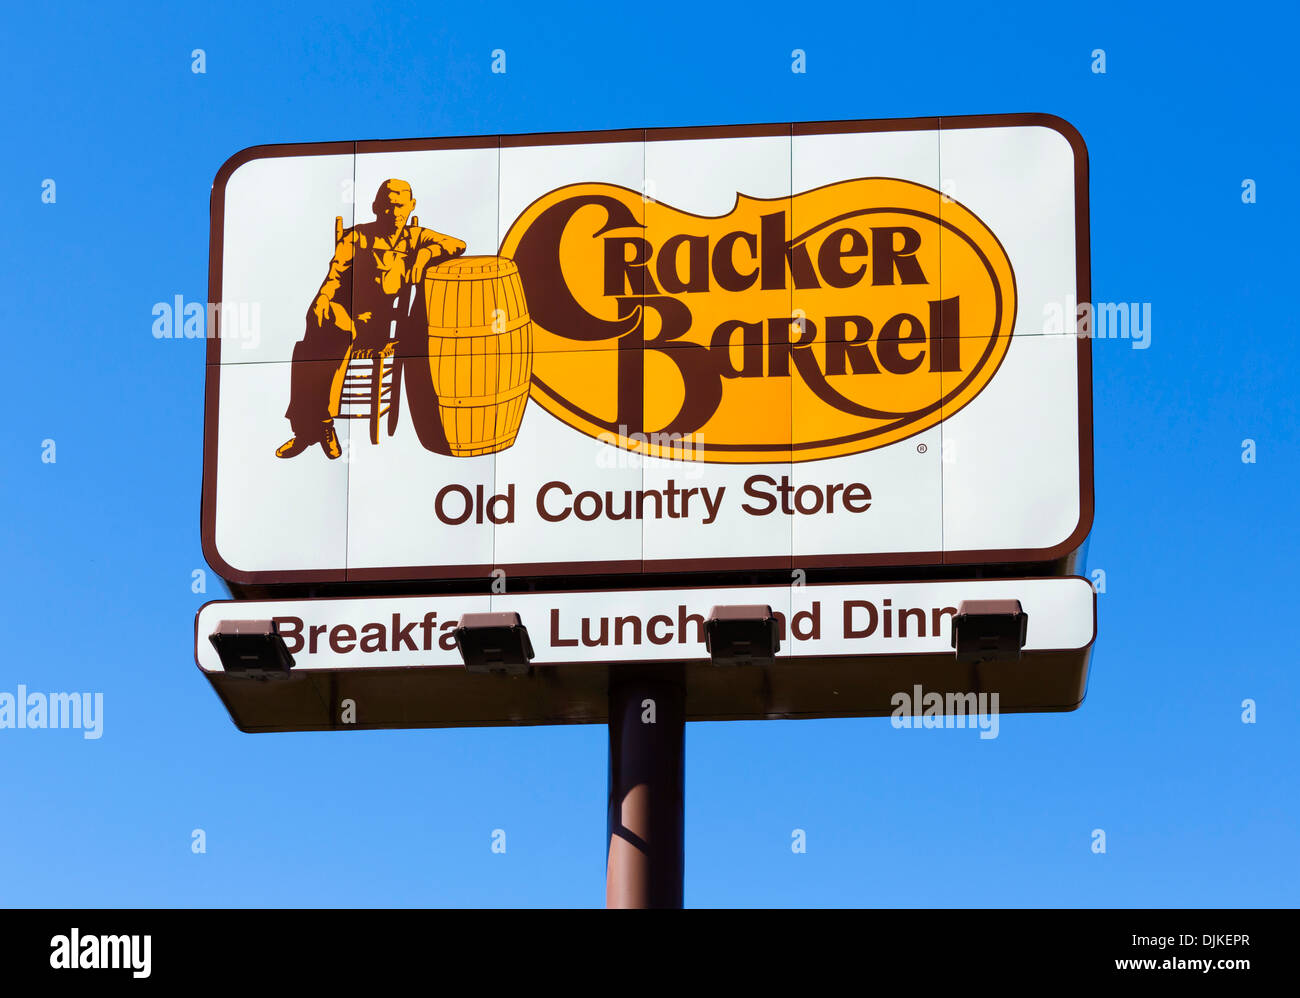 Cracker Barrel Old Country Store restaurant sign, Central Florida, USA - Stock Image